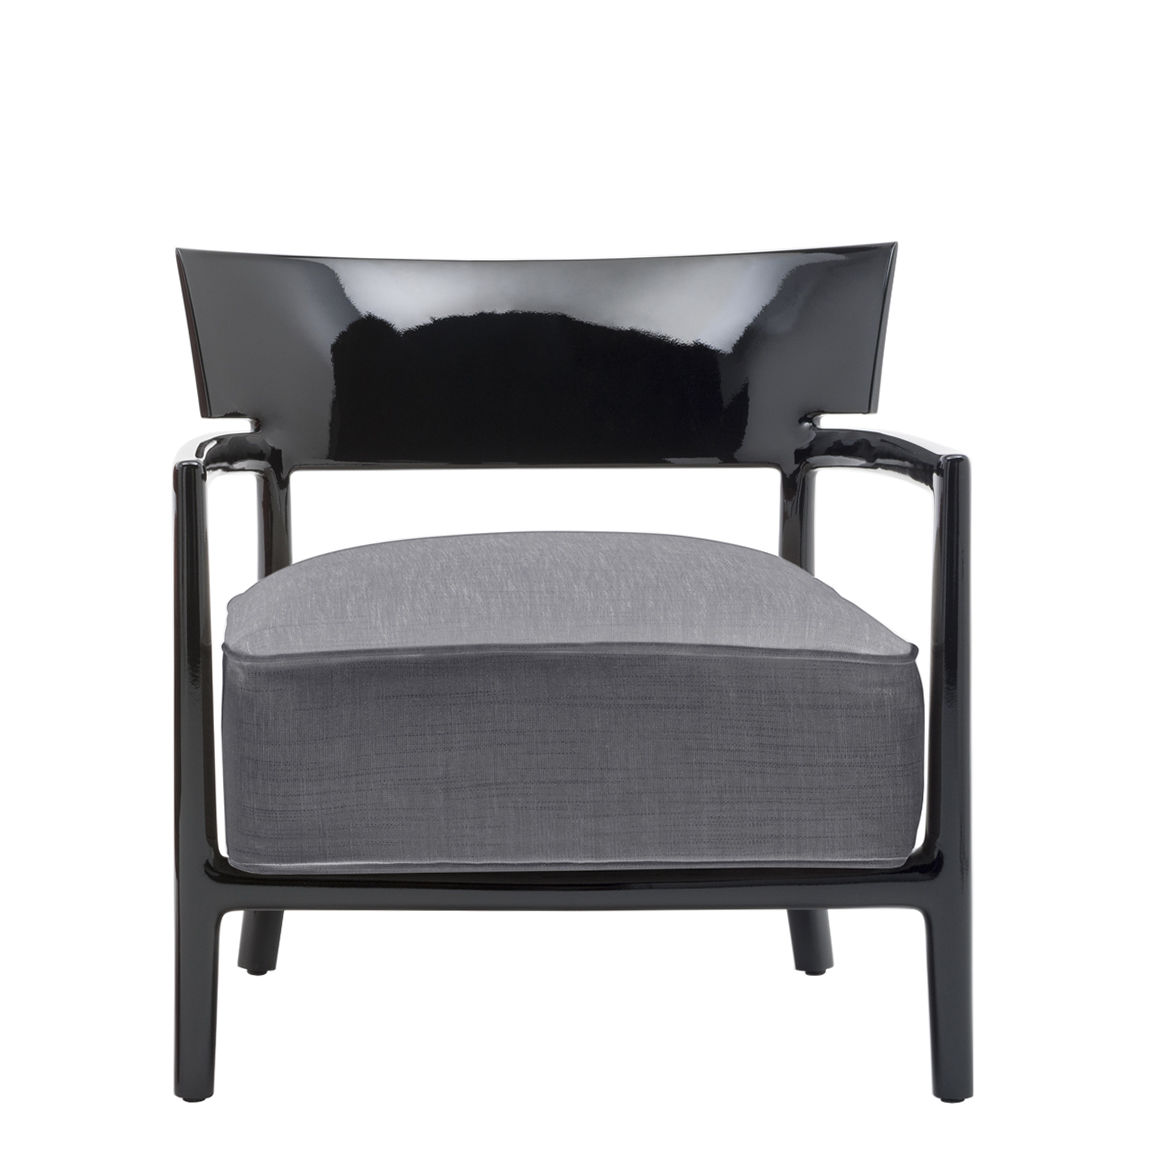 Furniture - Chairs - Cara Solid Color Armchair - / Tissu by Kartell - Black / Charcoal grey fabric - Fabric, Polycarbonate, Polyurethane